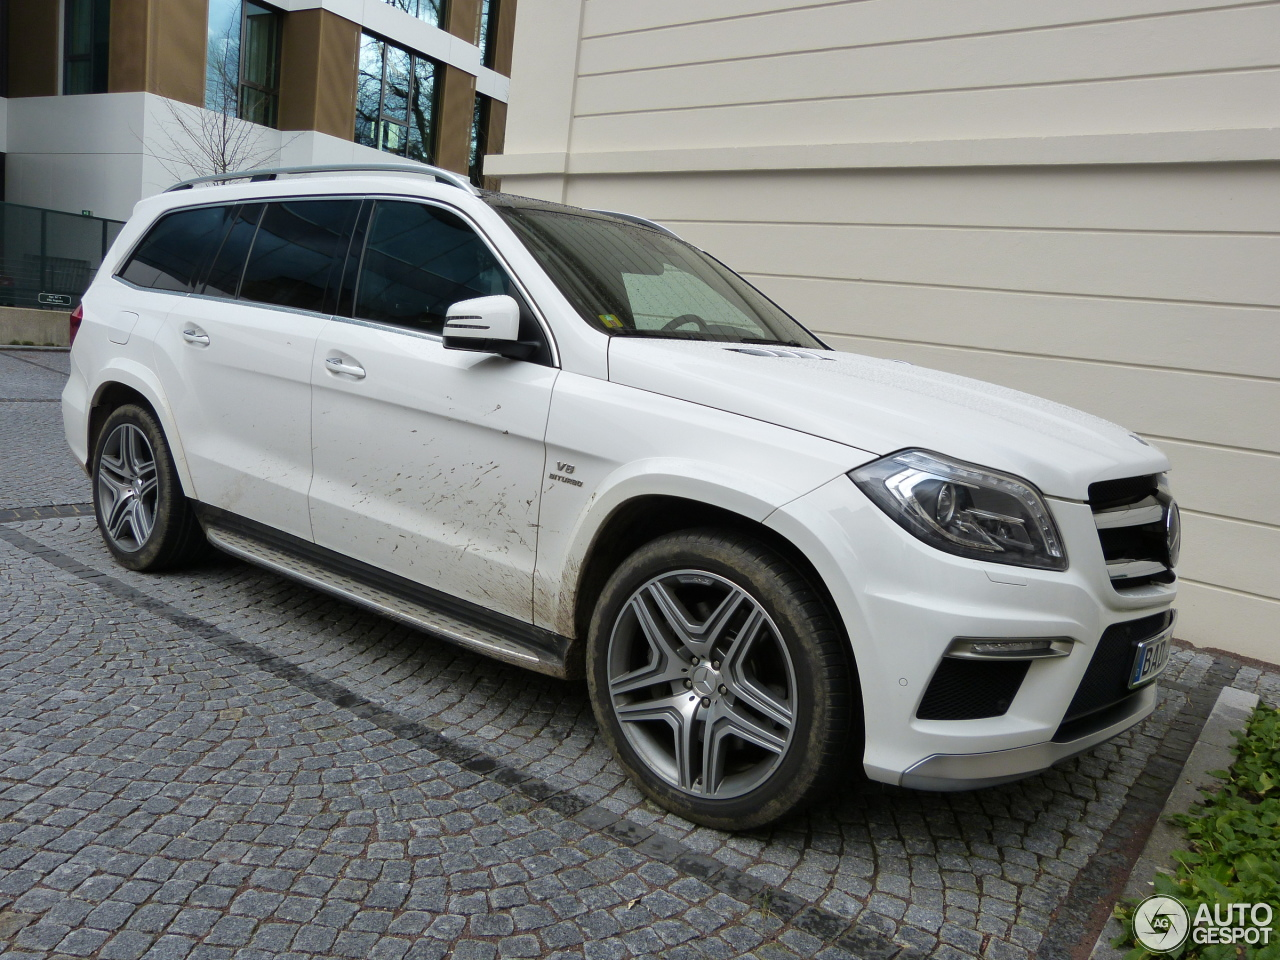 Mercedes benz gl 63 amg x166 8 february 2016 autogespot for Mercedes benz gl amg for sale